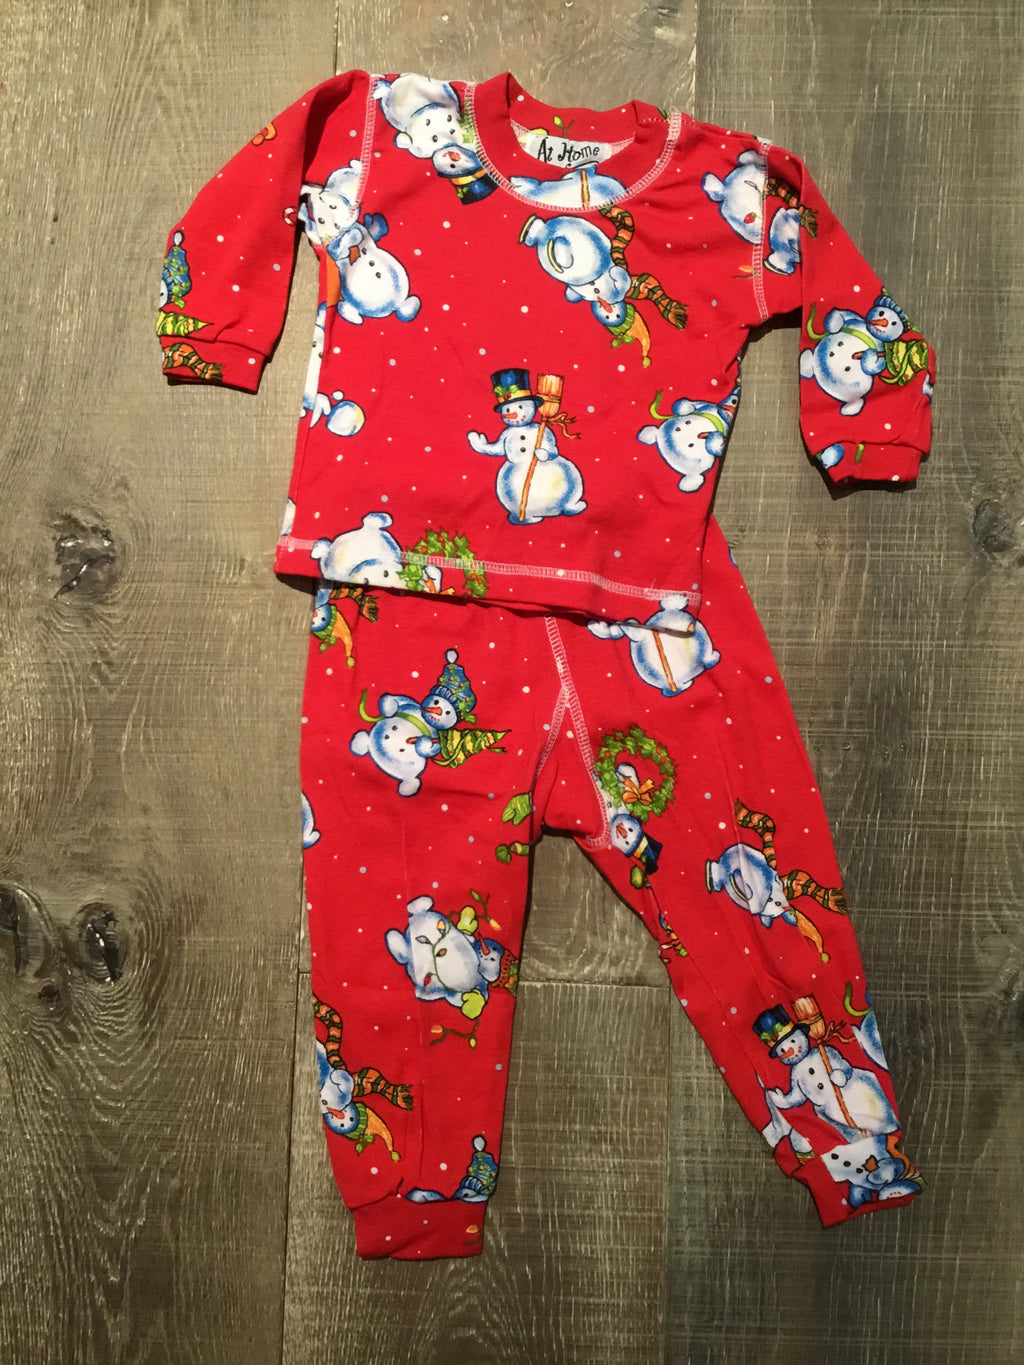 Frosty the Snowman Red Pajamas